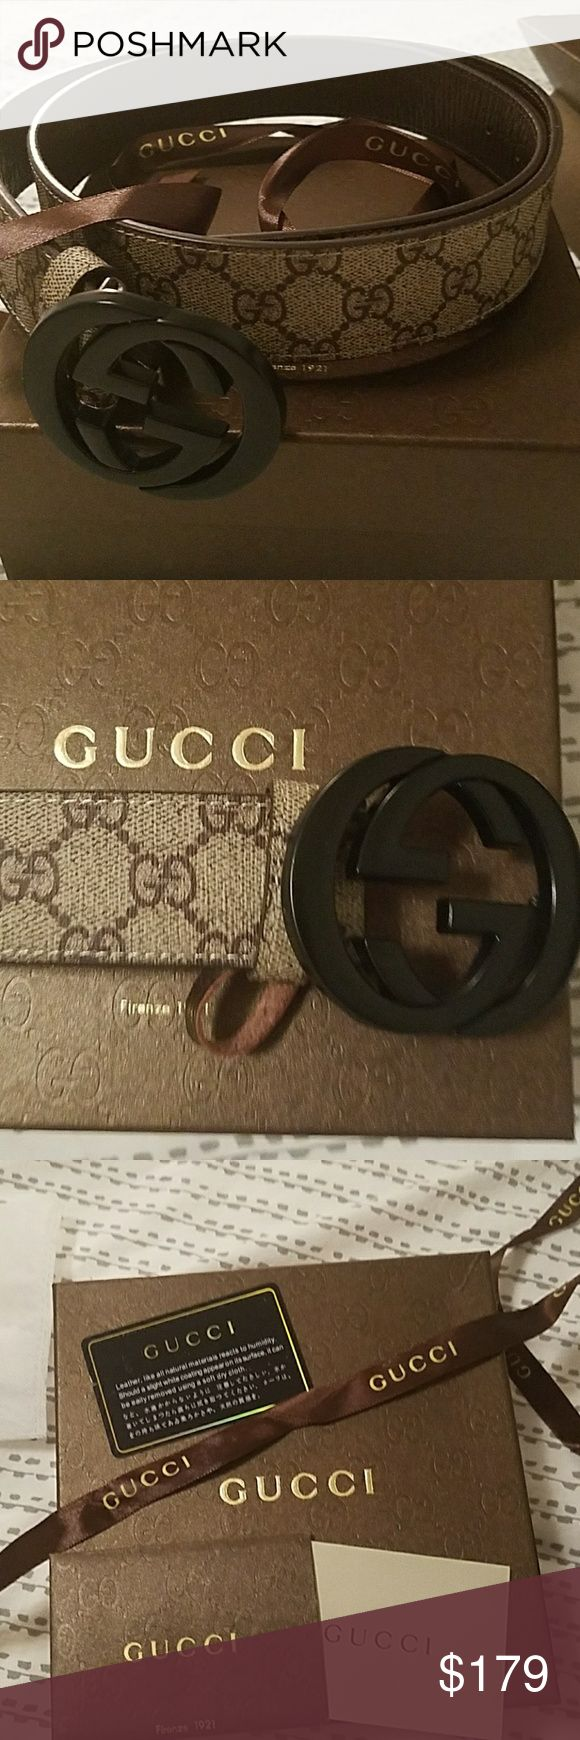 Brand new Gucci belt Brand new Gucci belt still in the box with Gucci bag and papers Gucci Accessories Belts